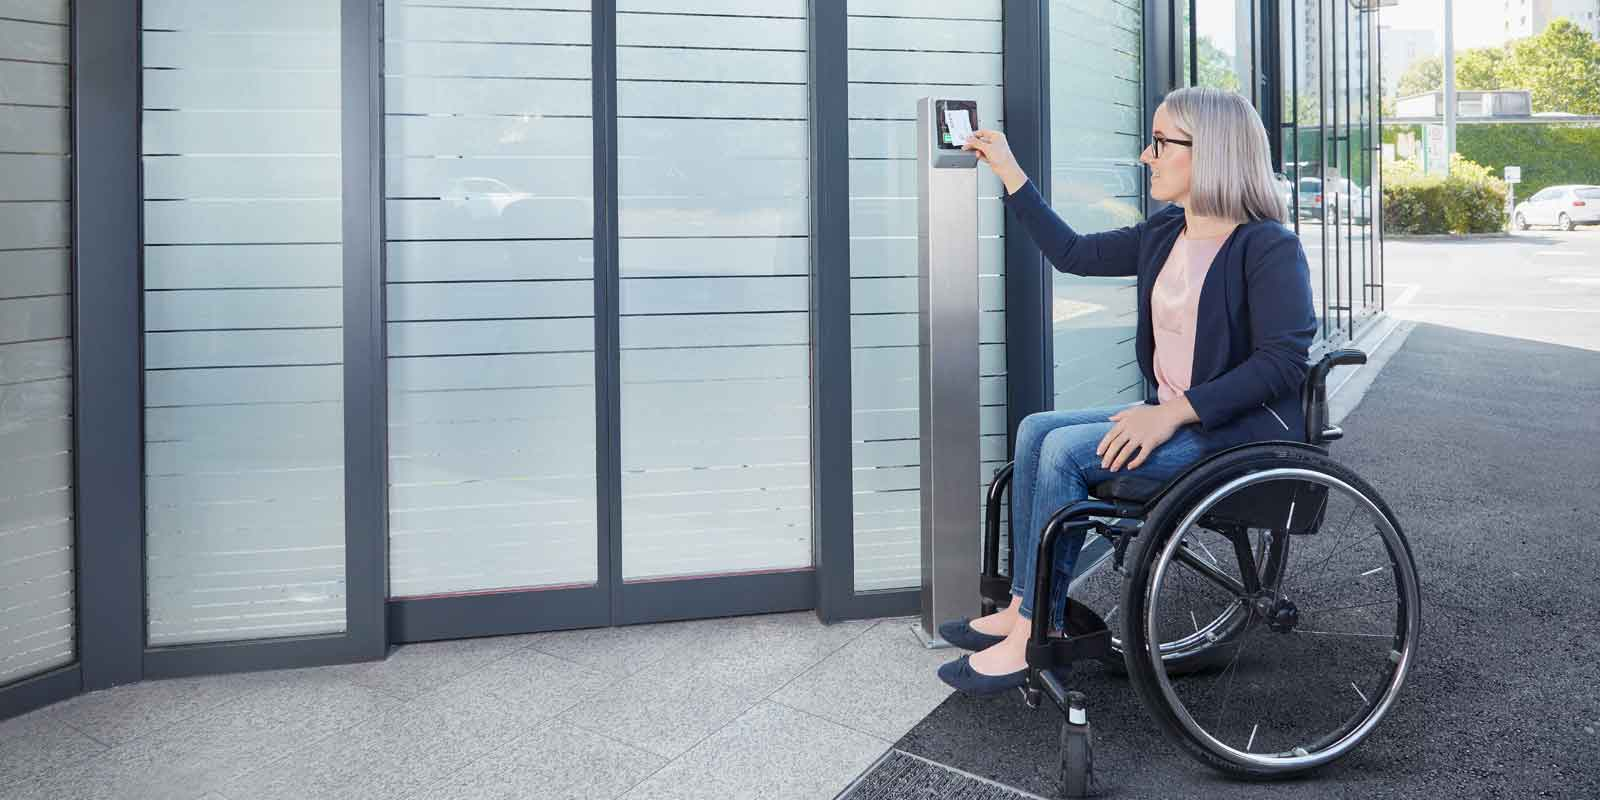 Girl in a wheelchair uses KeBin S10 and authenticates contactlessly via her bank card and FC technology